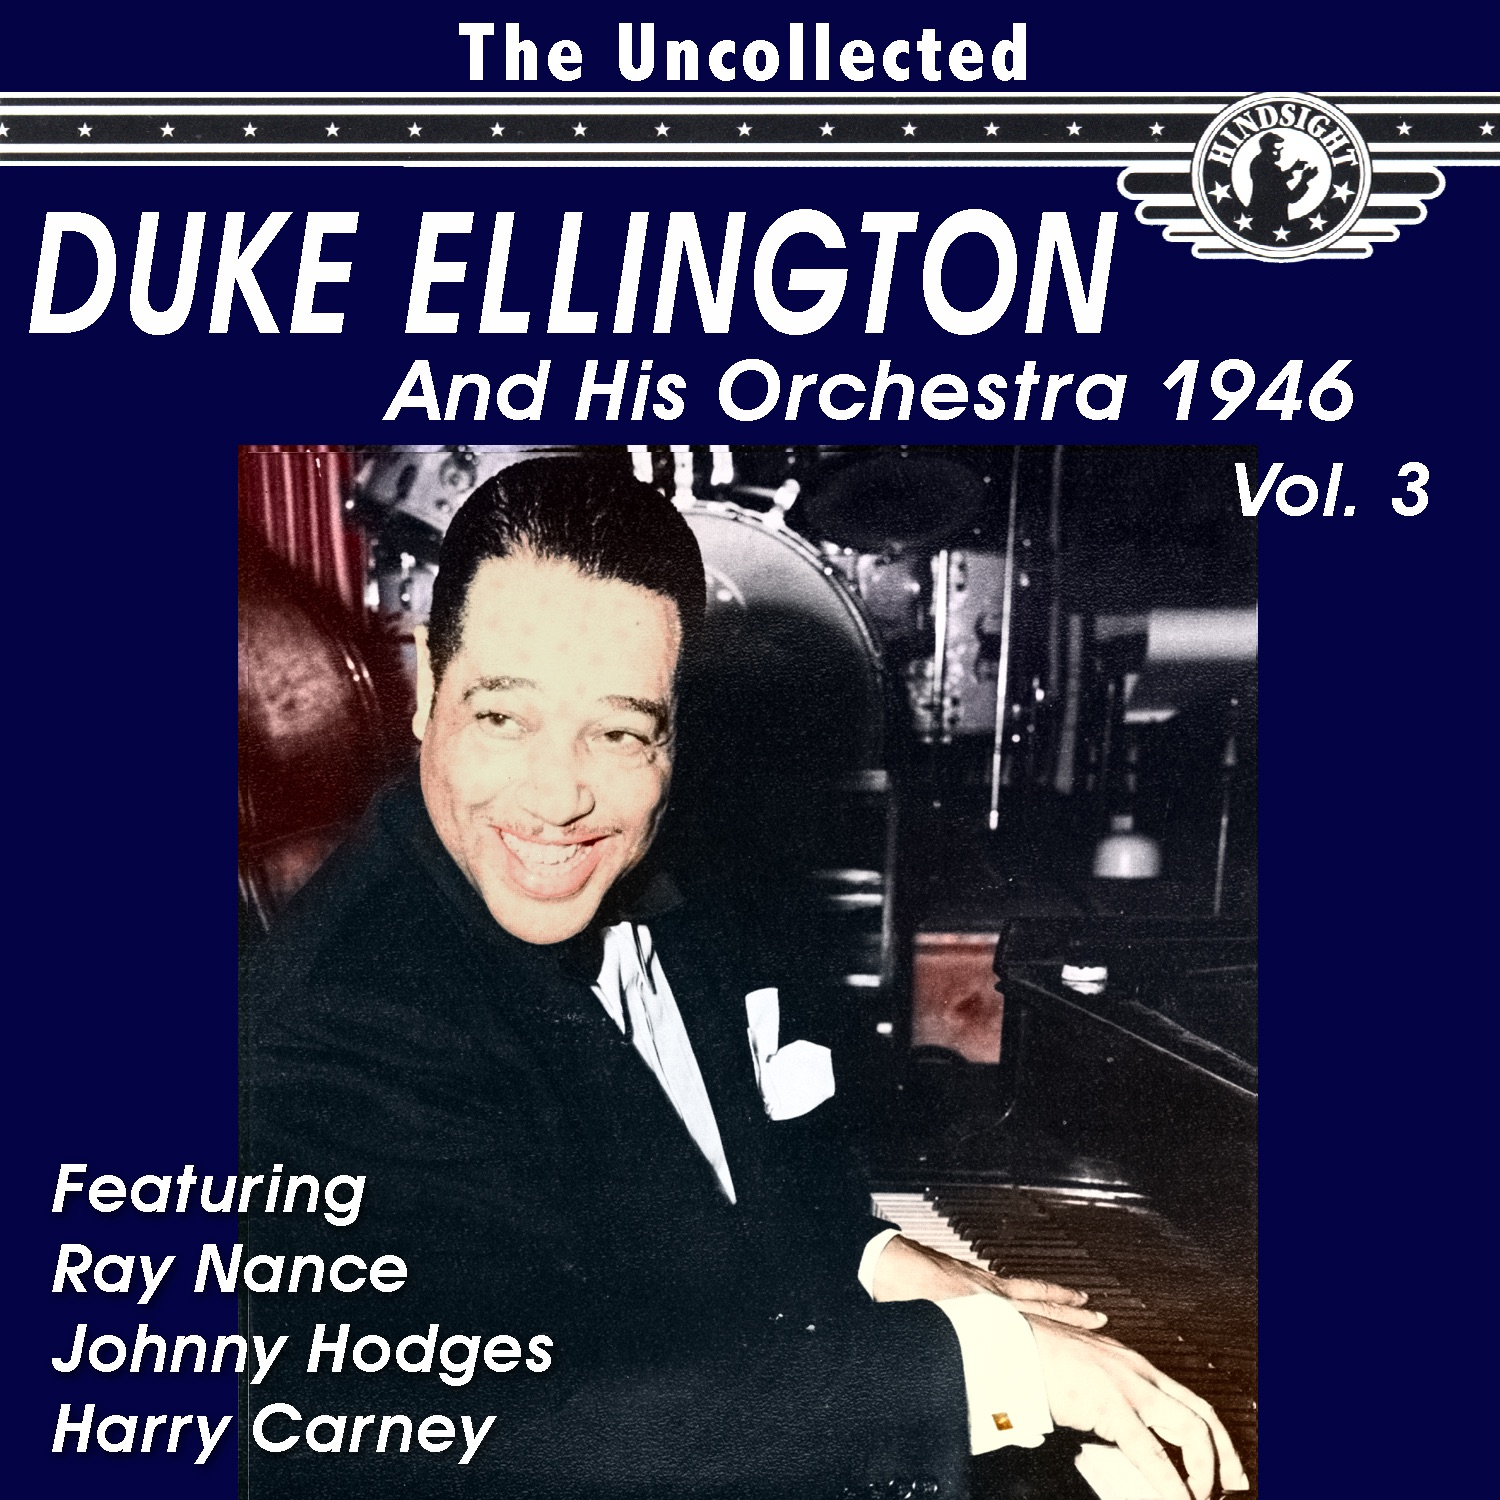 The Uncollected Duke Ellington and His Orchestra 1947, Vol. 3 (Remastered)